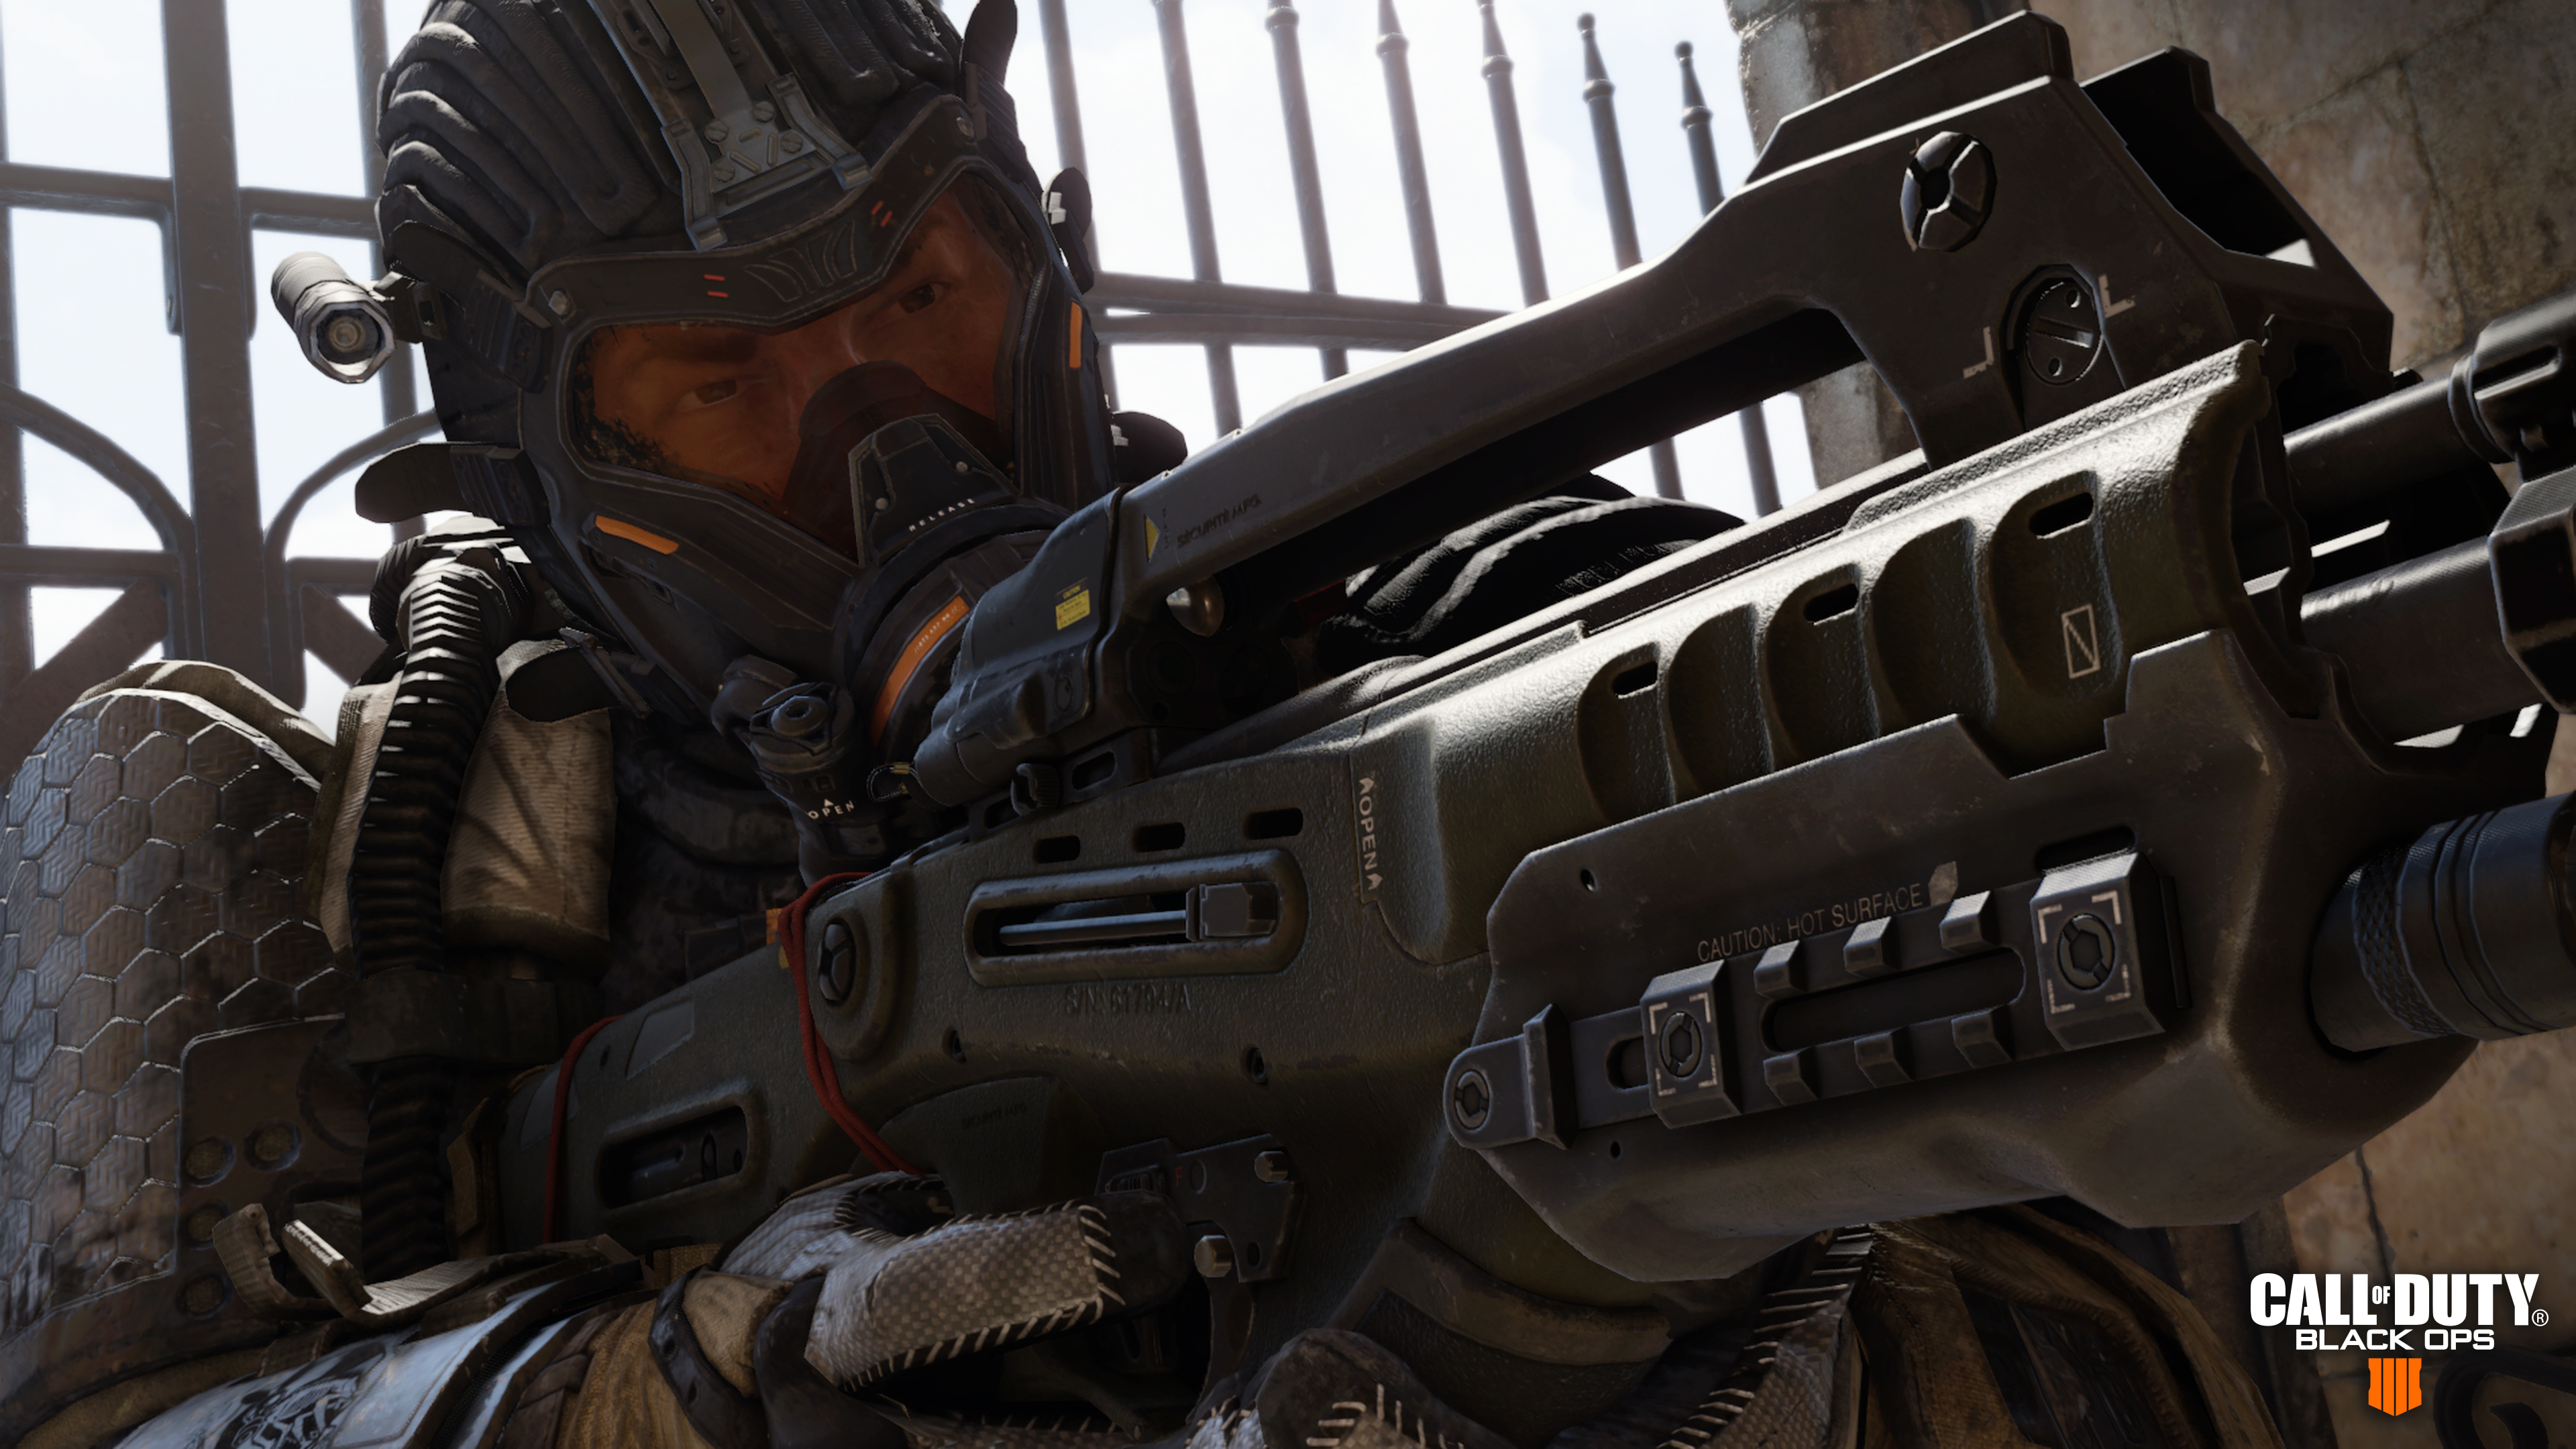 Call of Duty: Black Ops 4: watch the first trailer - The Verge